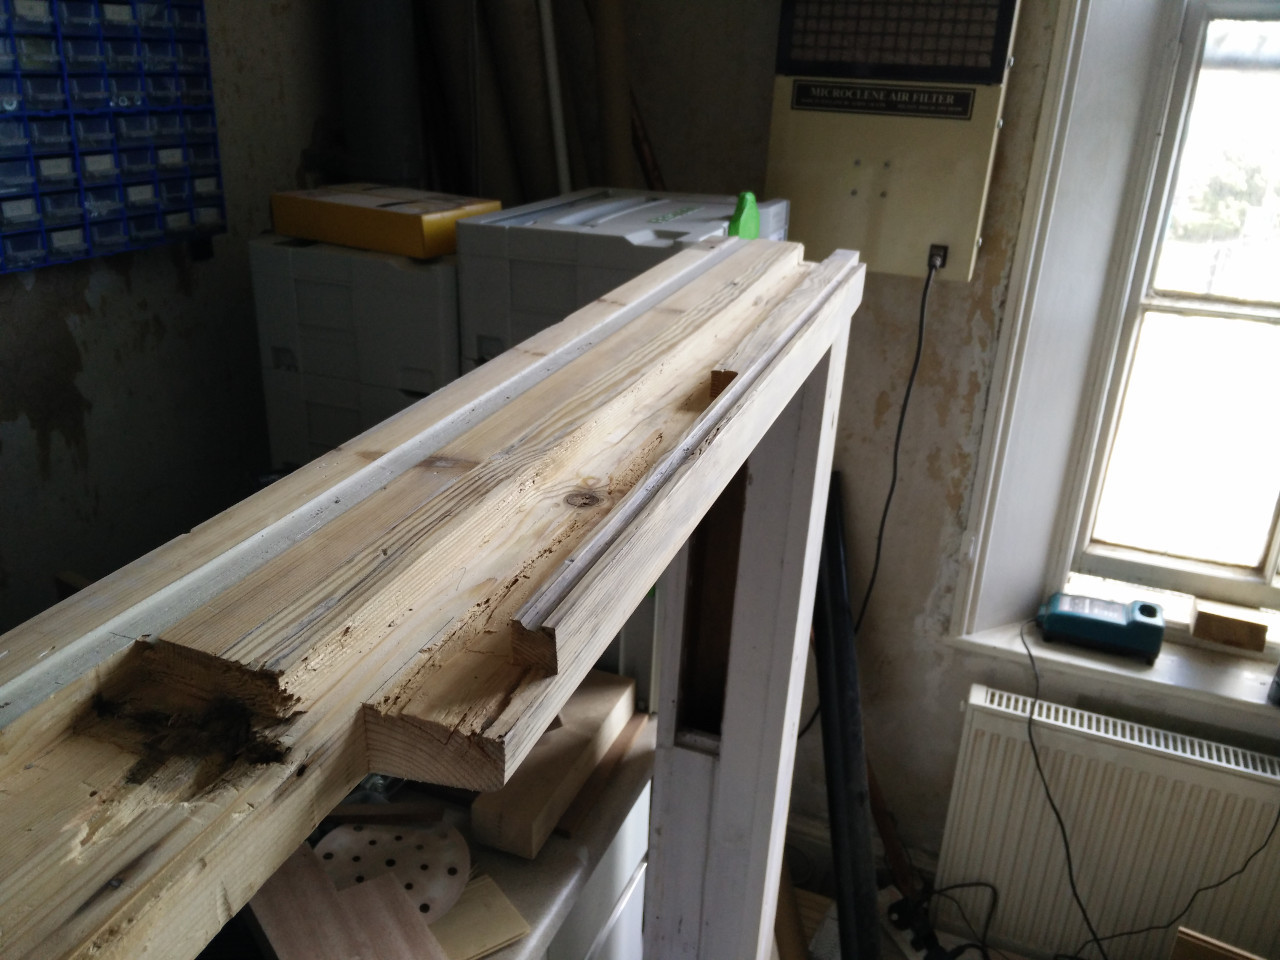 Repairing a window sill part 2 wobblycogs workshop for Window sill replacement